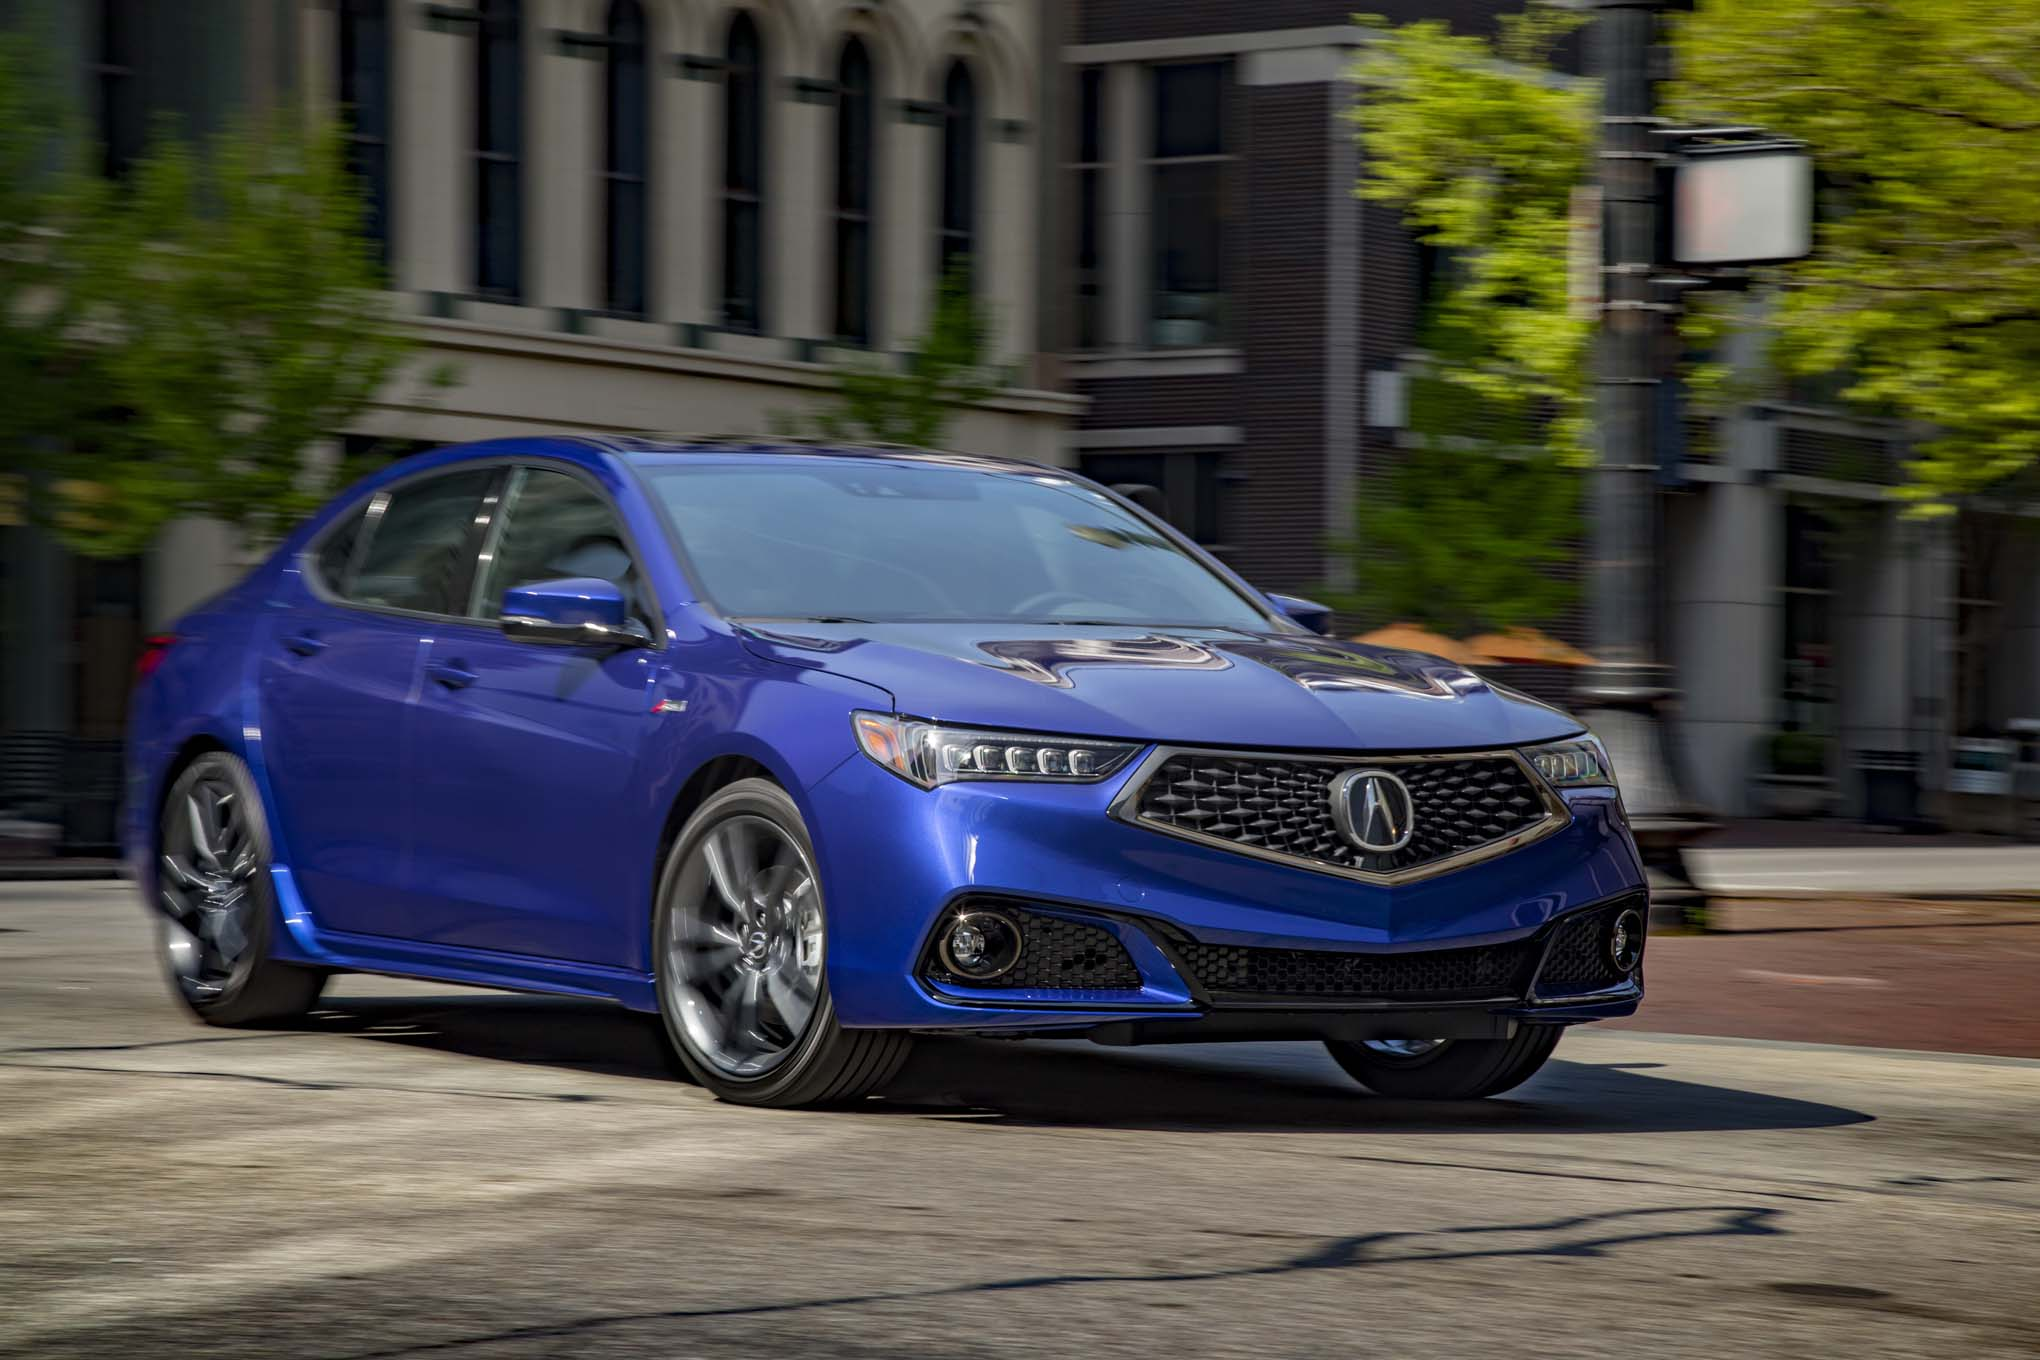 Refreshed 2018 Acura TLX Starts at $33,950 | Automobile Magazine